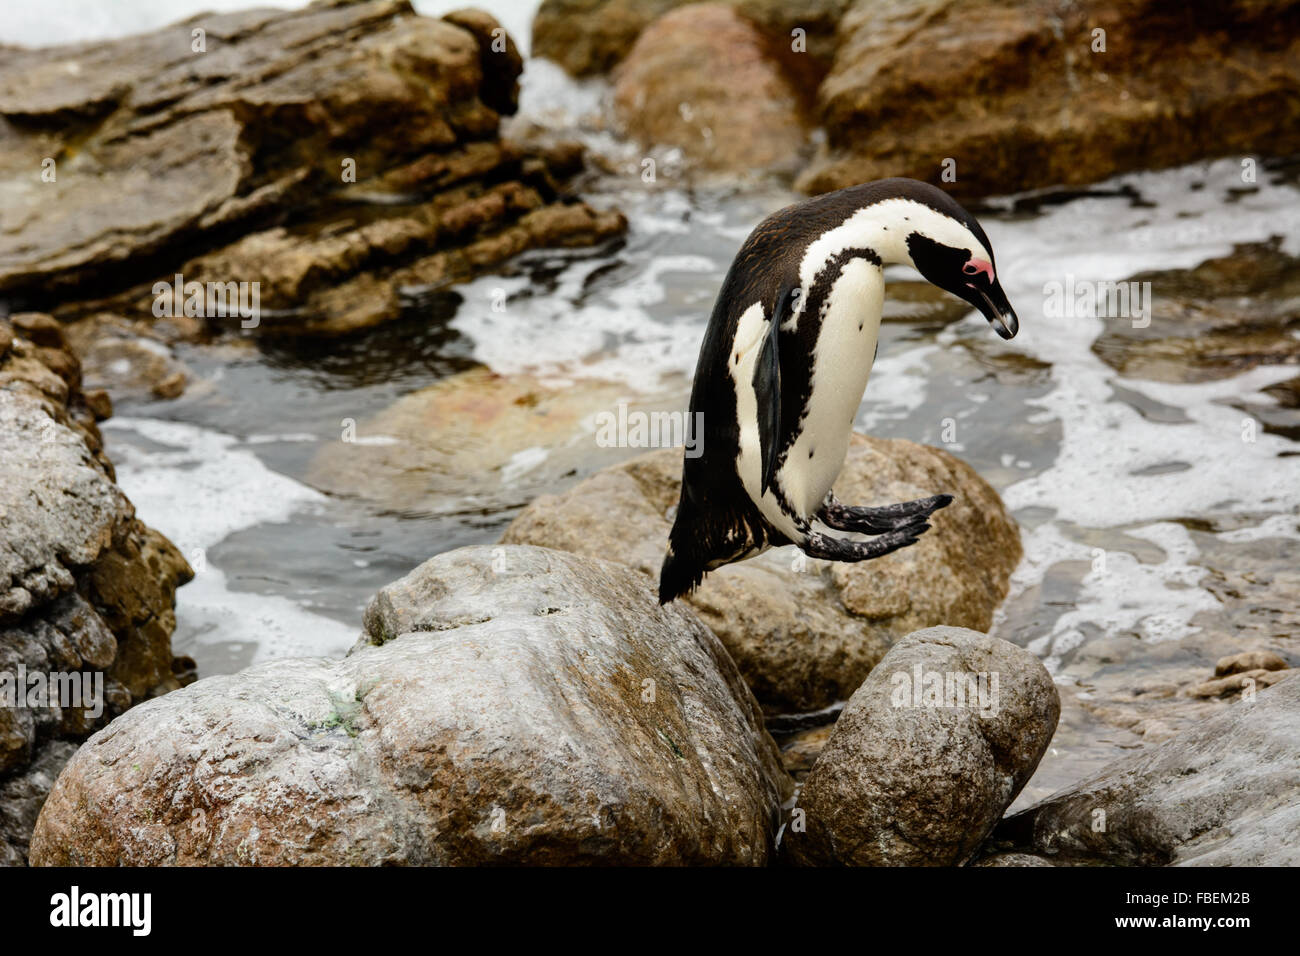 An African Penguin caught leaping in mid air - Stock Image